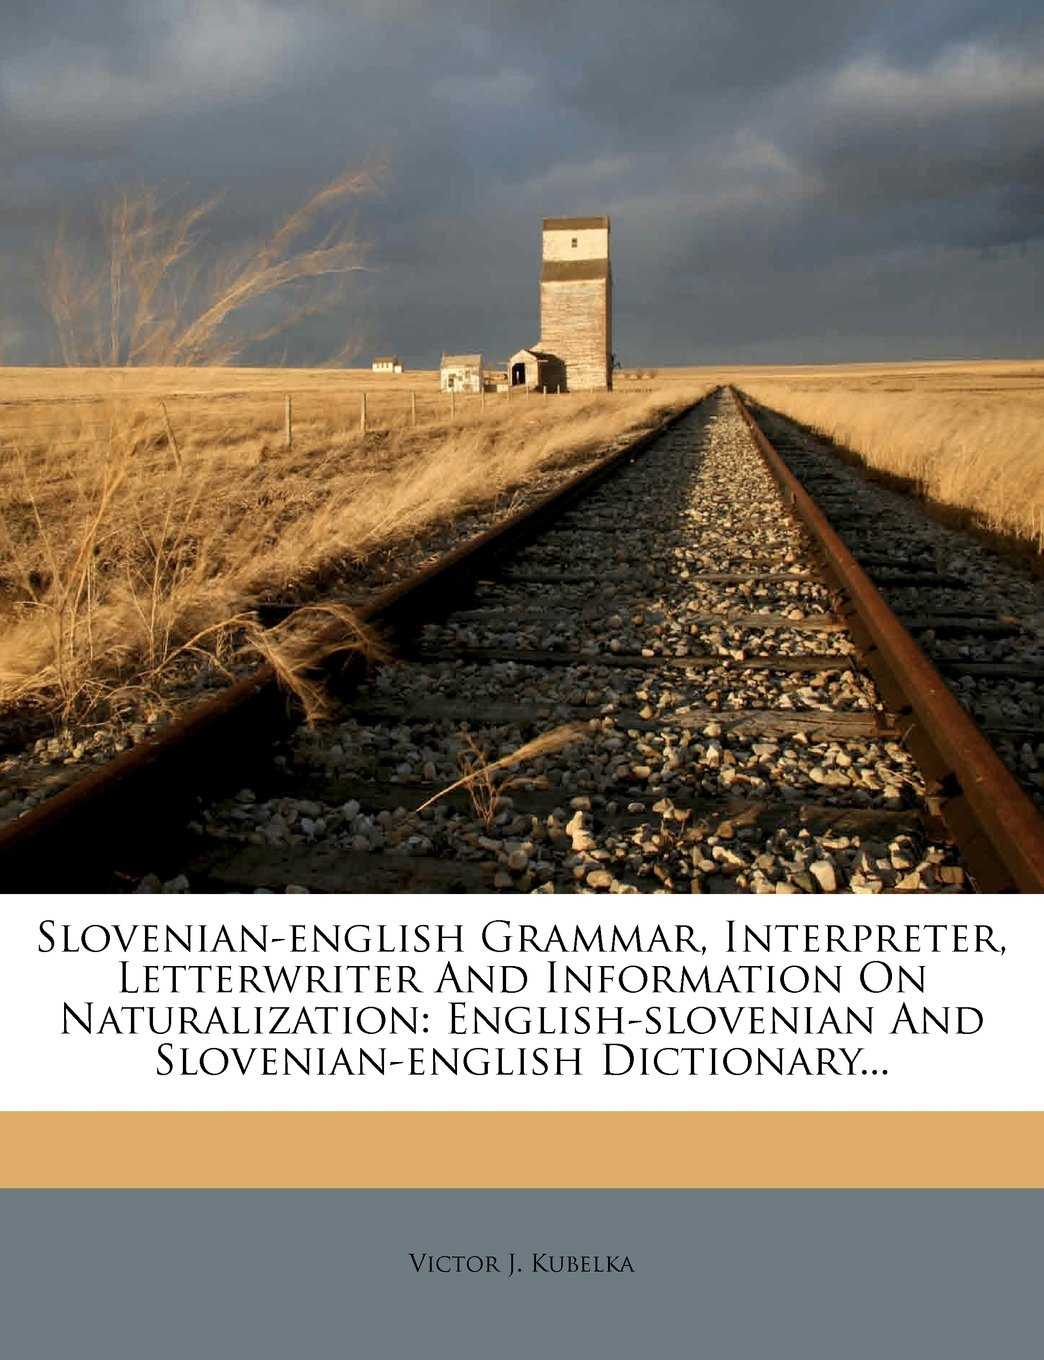 Book online at low prices in india slovenian english grammar interpreter letterwriter and information on naturalization english slovenian and